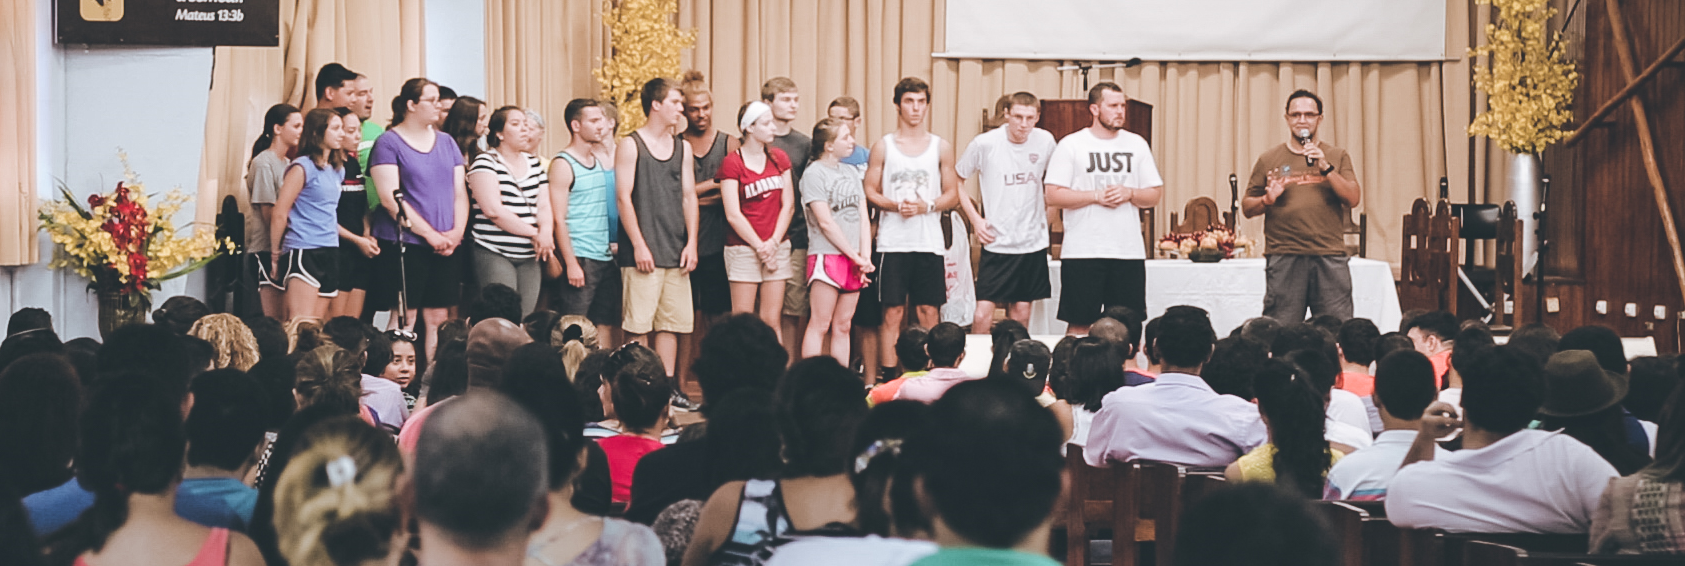 Team members crowd together as Pastor Djard introduces them to the Brazilian students.